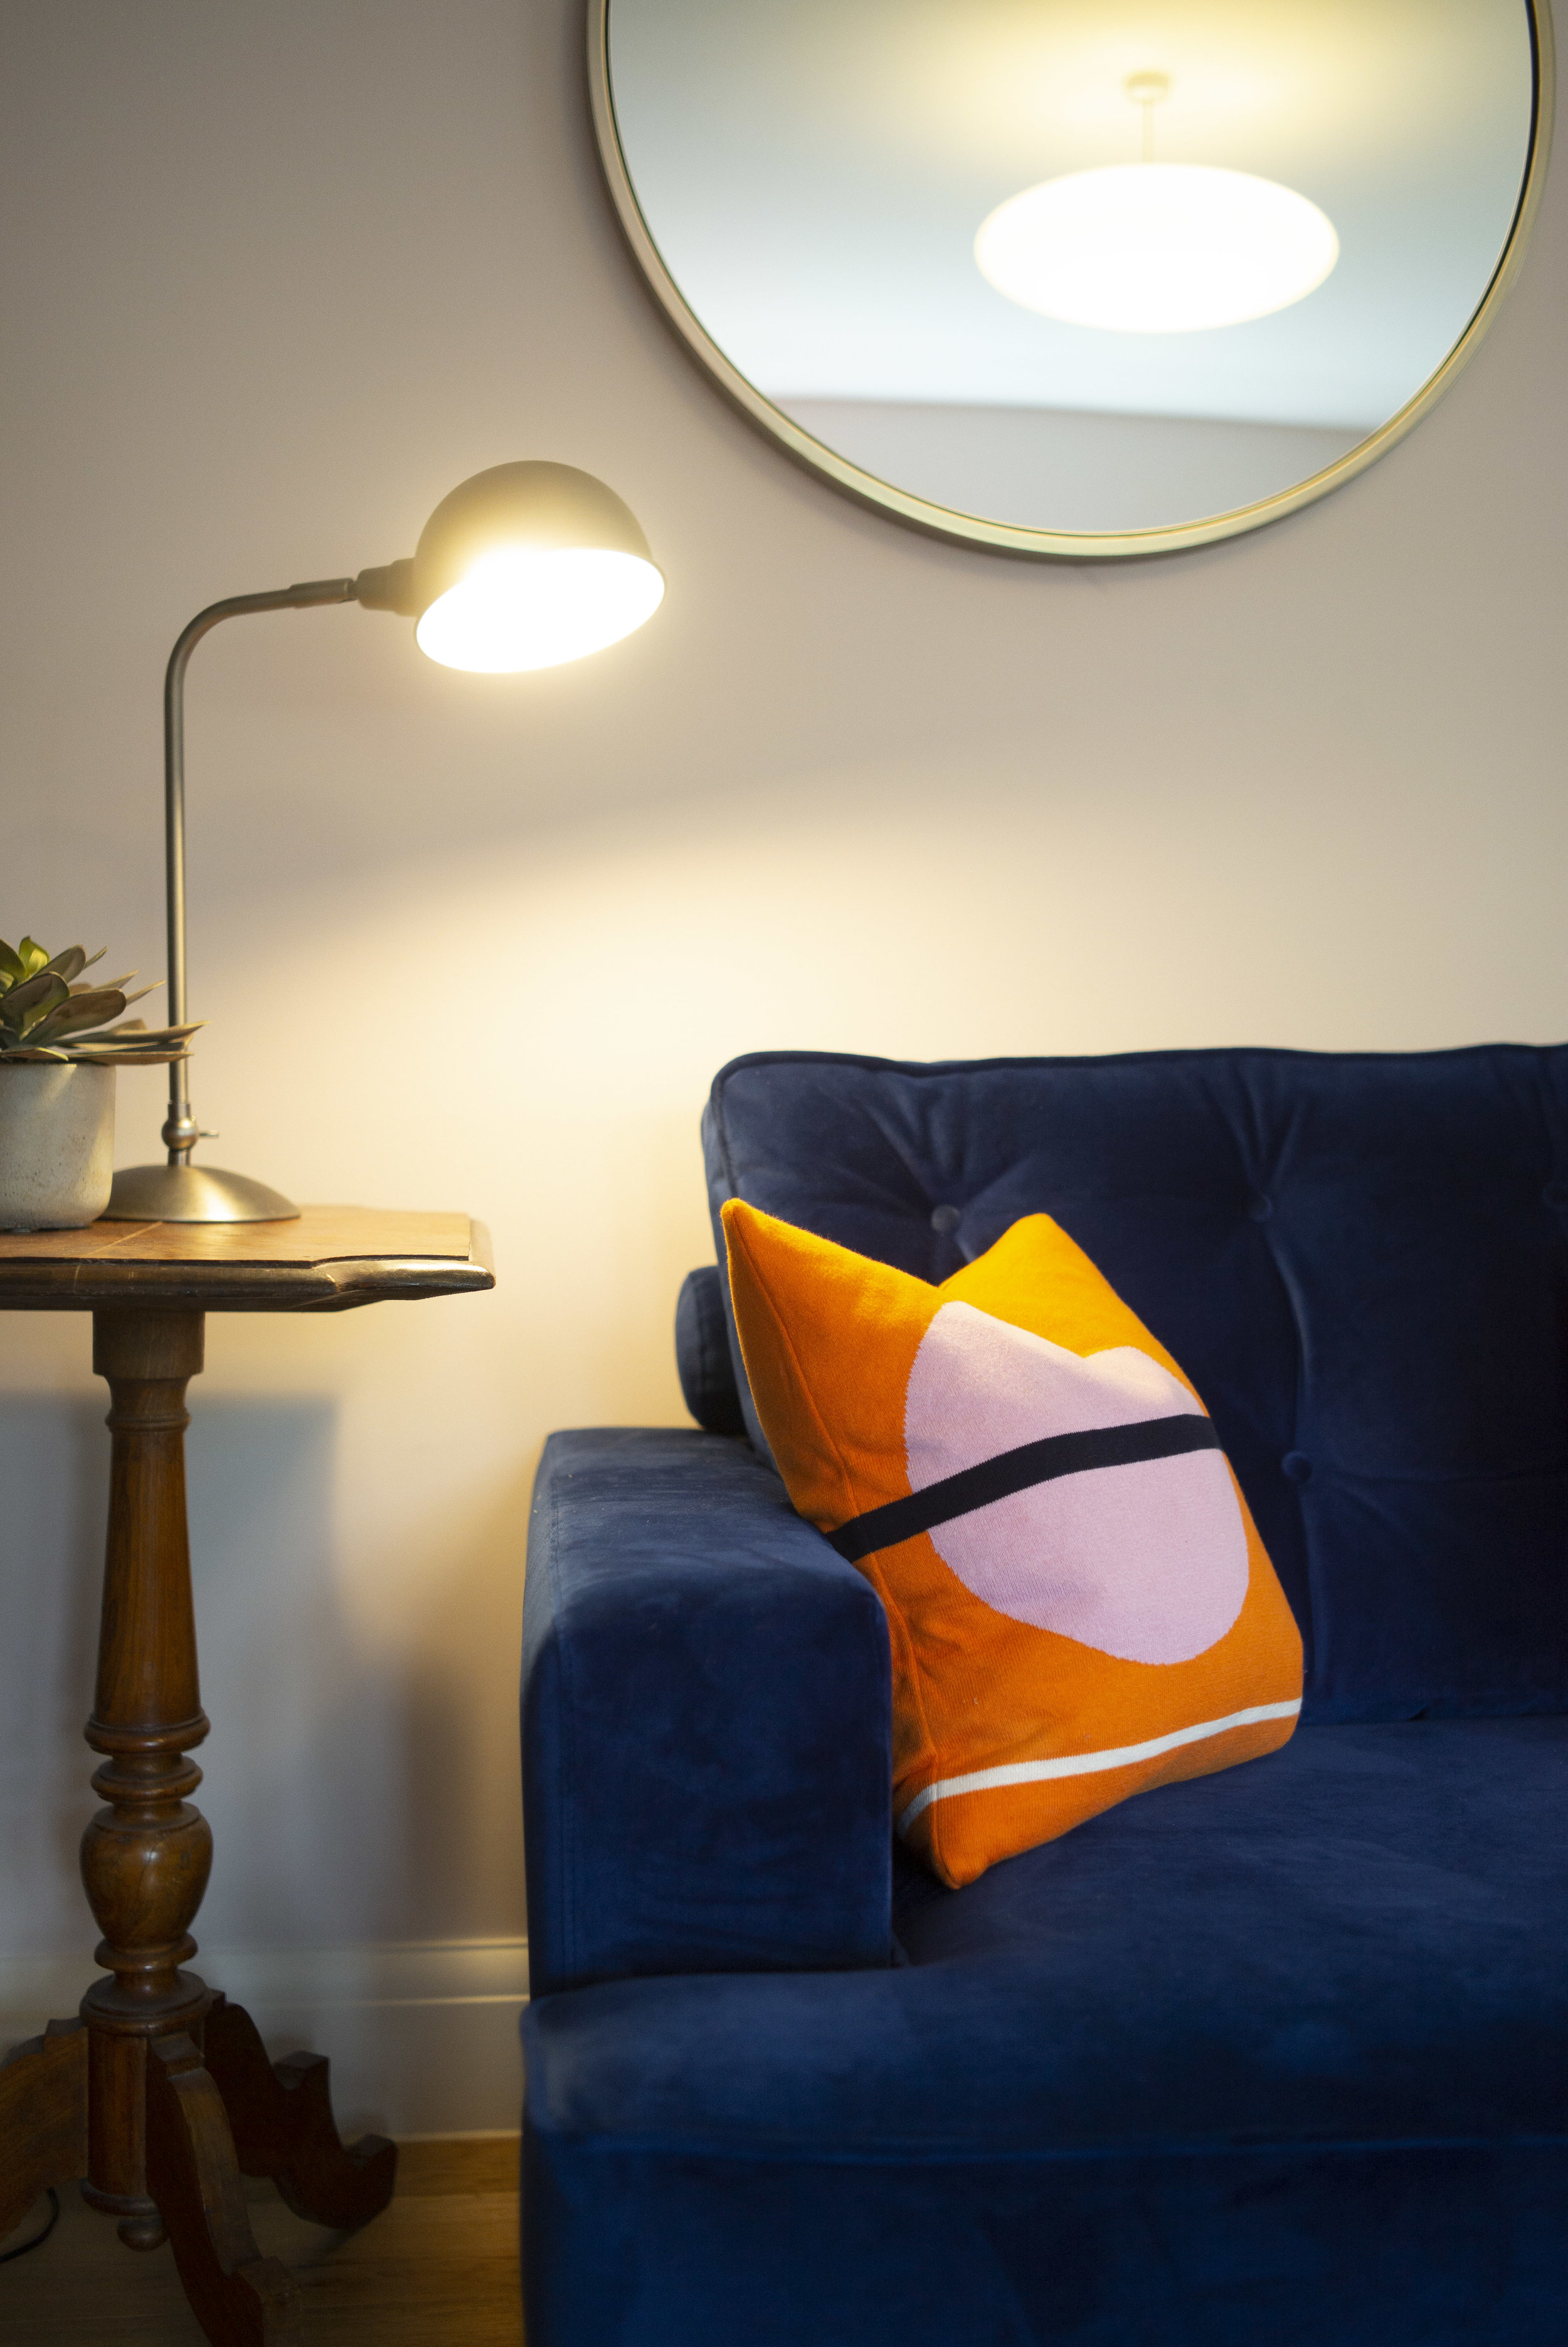 INTERIOR DESIGN - Lynne Horton Design offers creative solutions to interior design challenges of any scale, working to your brief and budget. Whether you simply want advice on selecting paint colours to a complete refurbishment, we can share our design knowledge with your needs in mind.